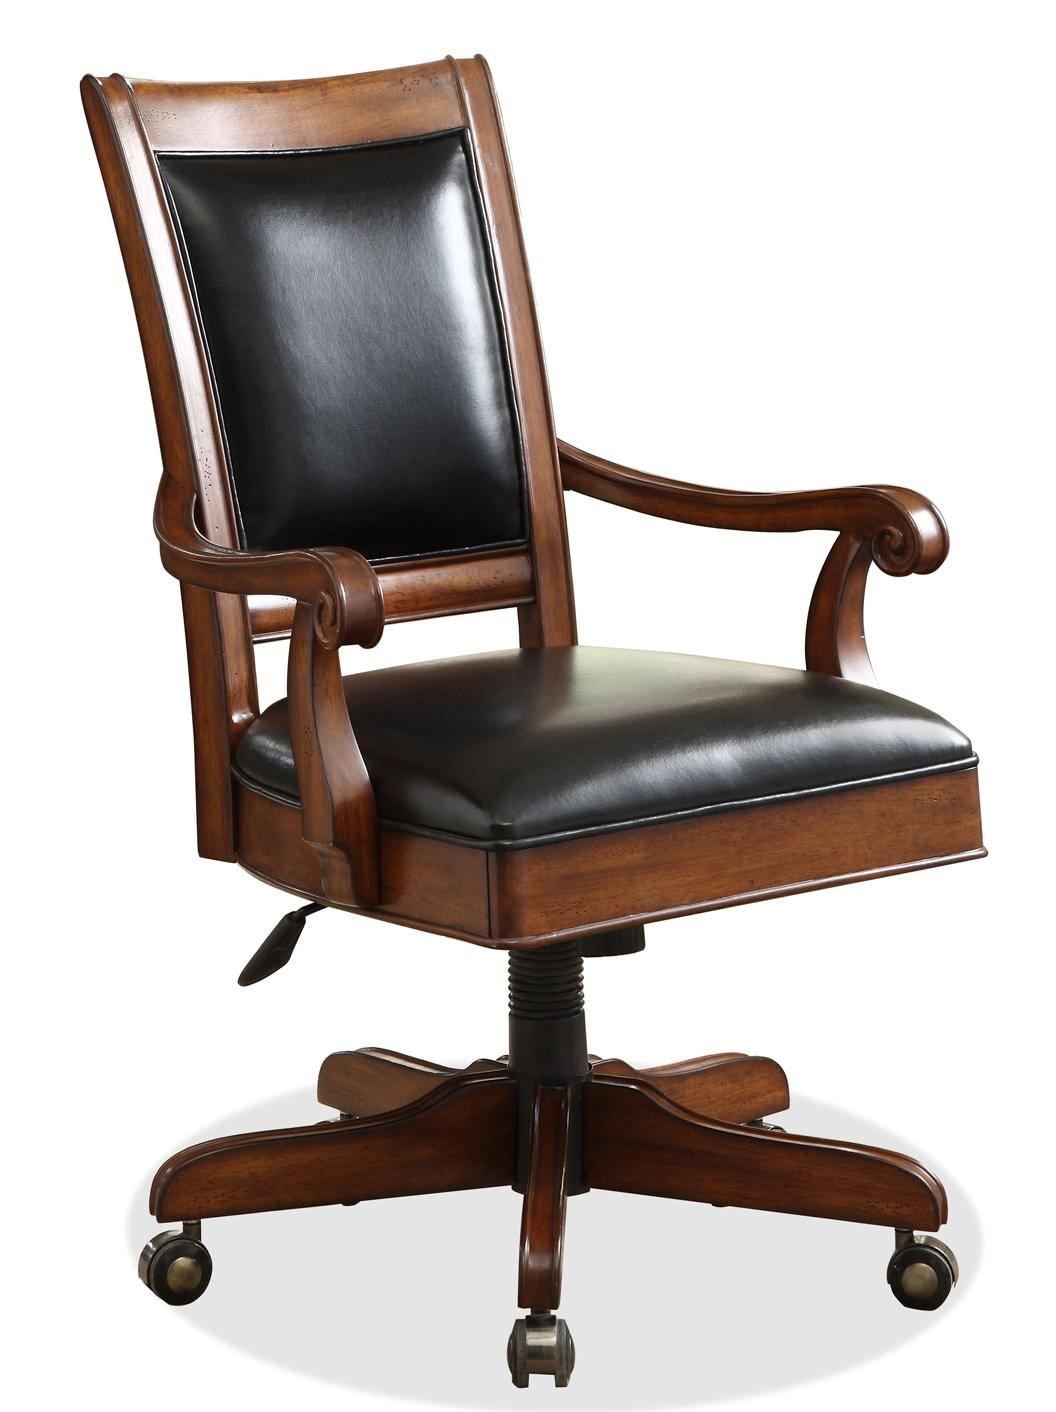 Riverside furniture bristol court 24538 caster equipped for Wooden office desk chair